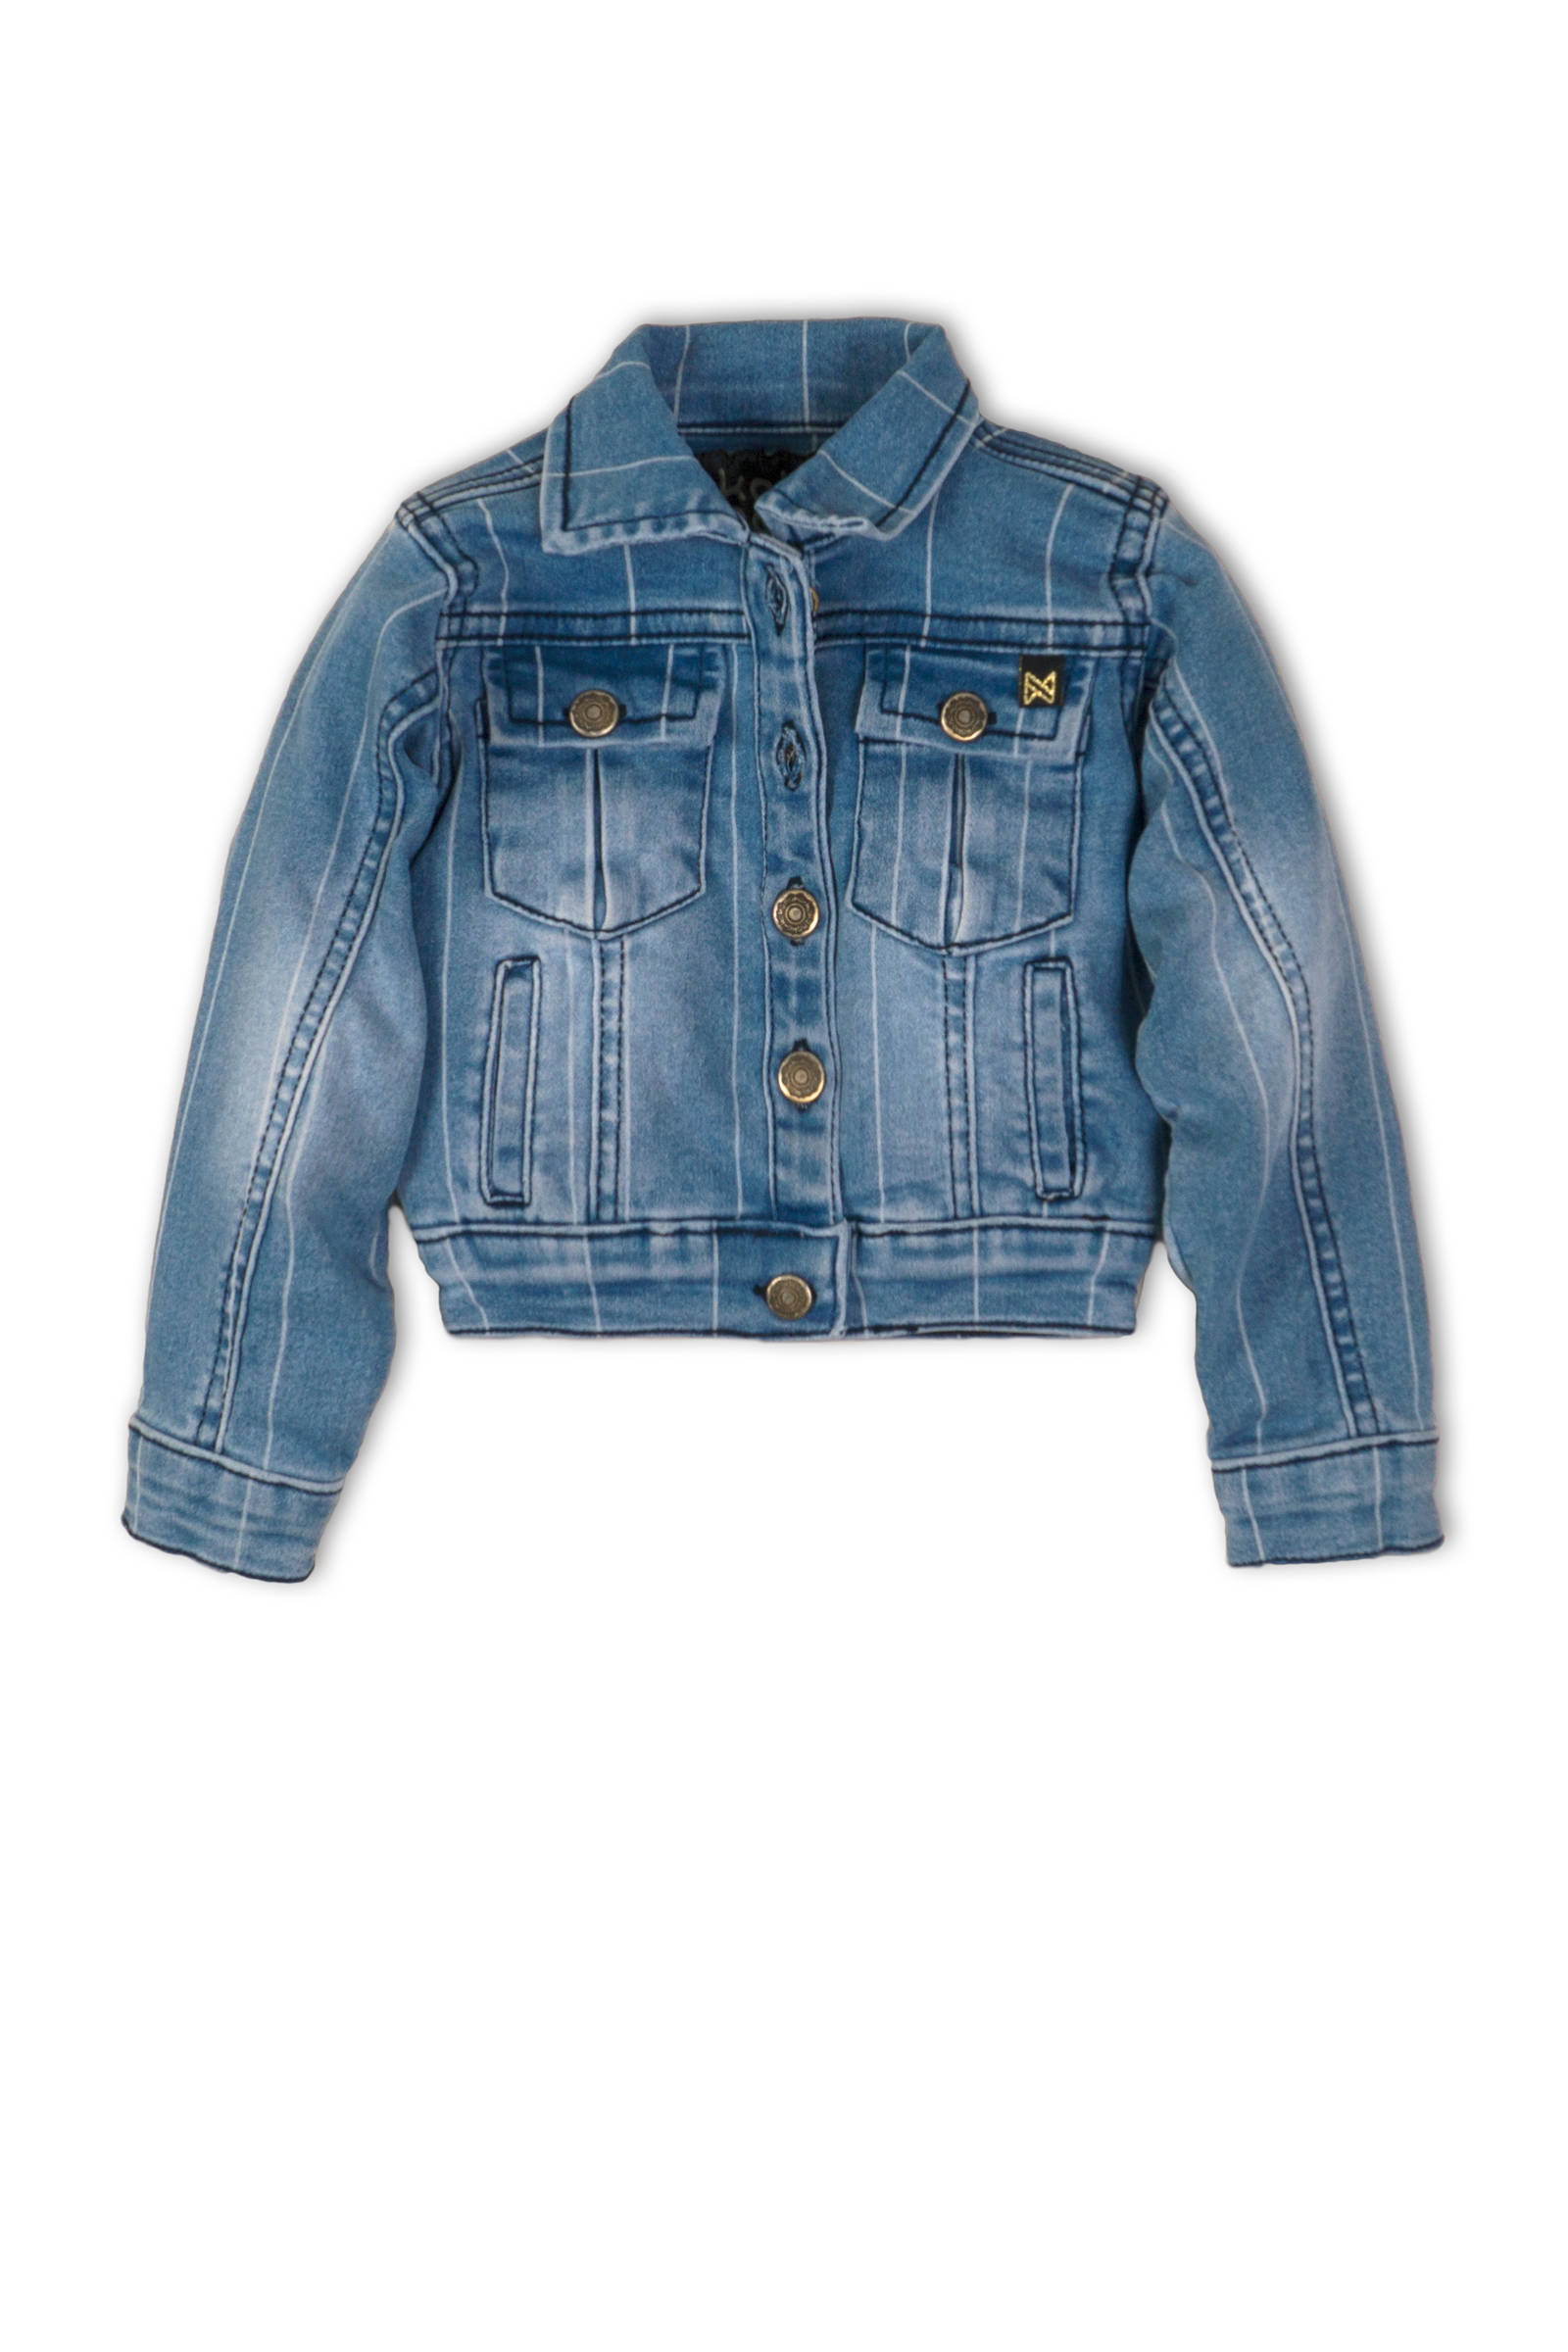 gestreepte spijkerjas dark denimlight denim